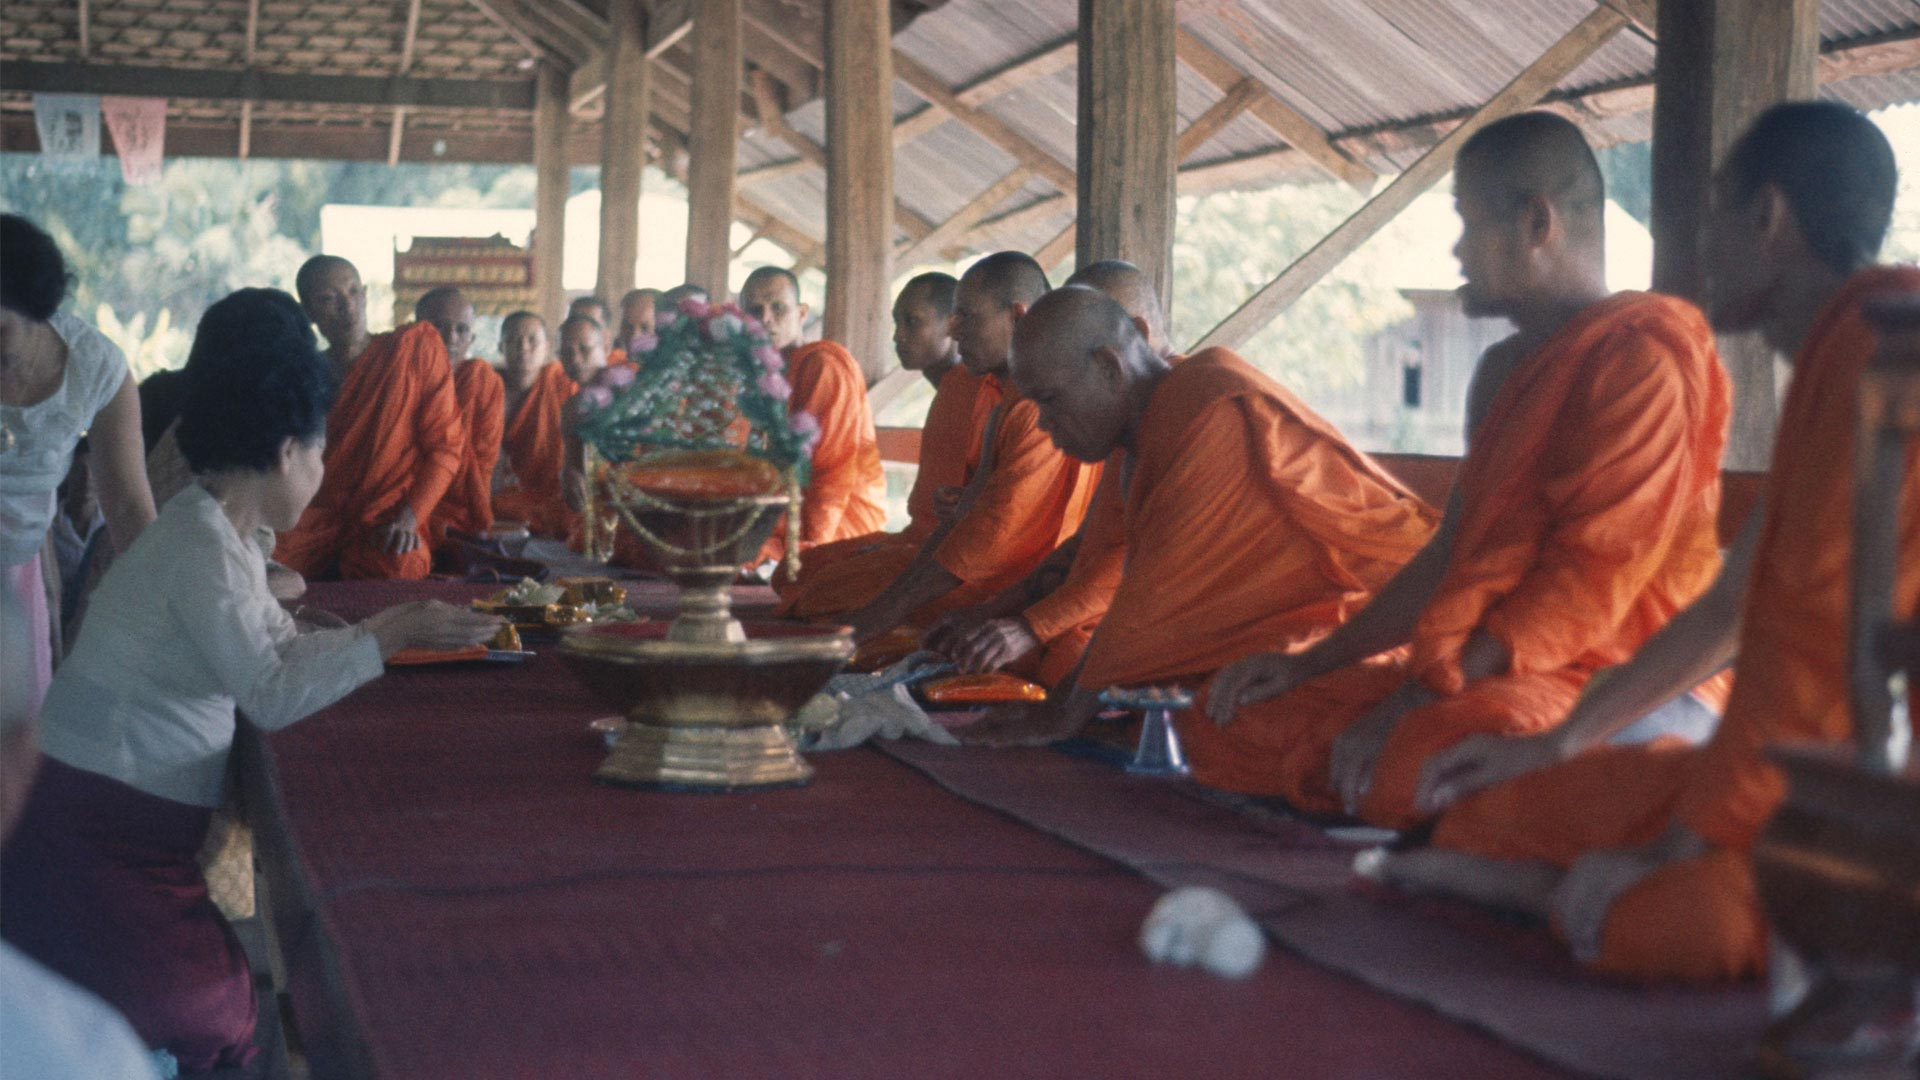 Thot Kathin: The ceremonial presentation of new robes and gifts to Buddhist monks in Thailand overview image